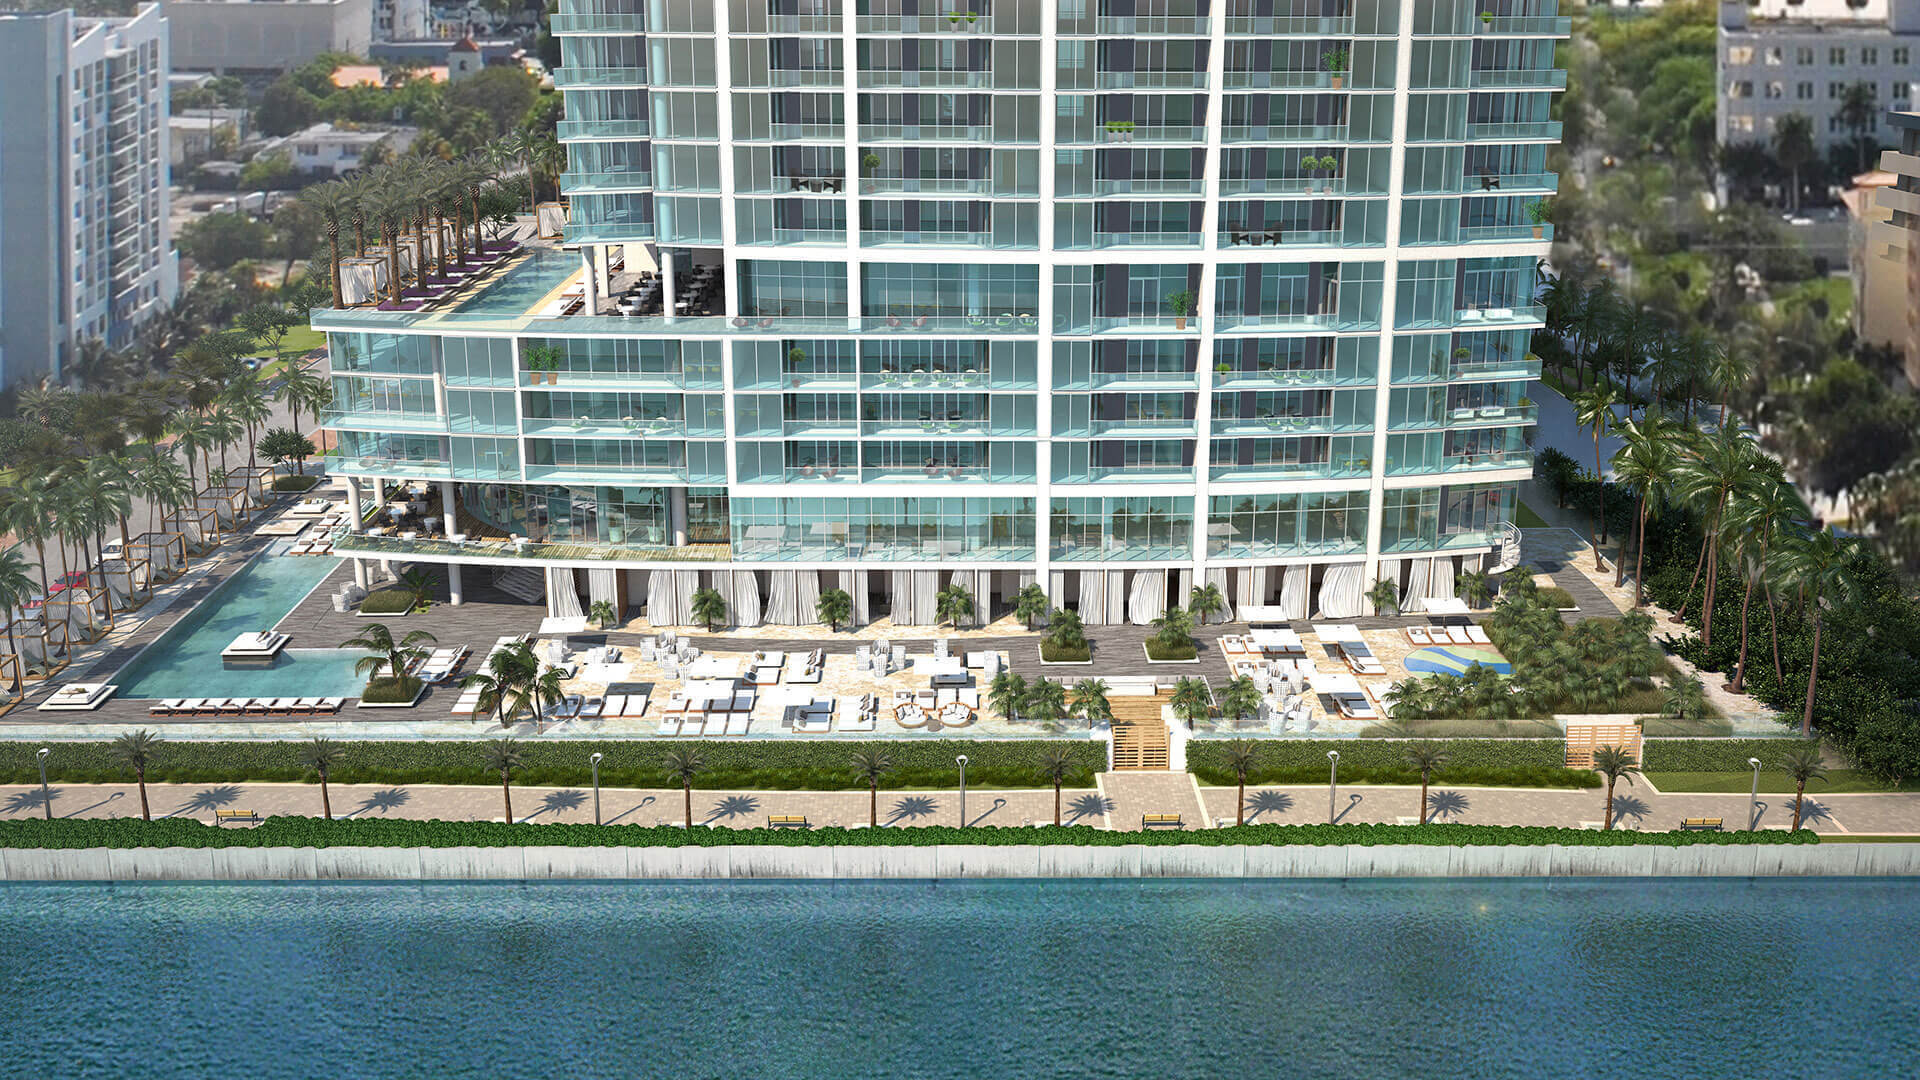 Architectural rendering of beach amenity at Biscayne Beach Residences in East Edgewater Miami